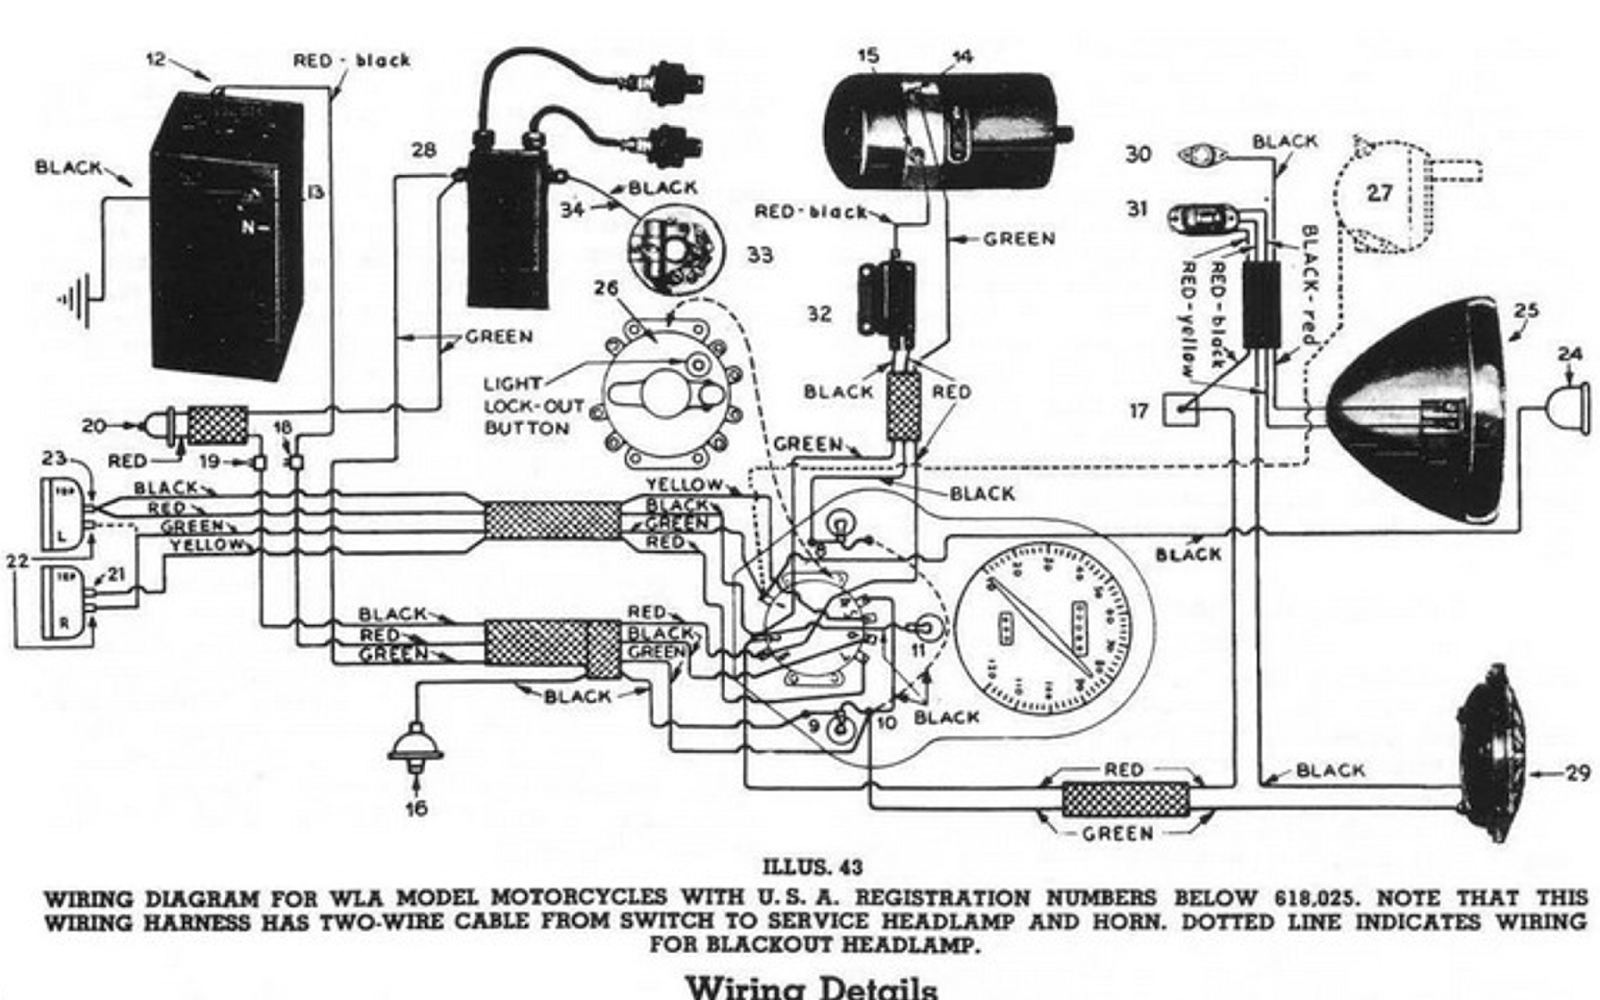 small resolution of i have started re wiring the harley here is a wiring diagram from the wla manual for early models